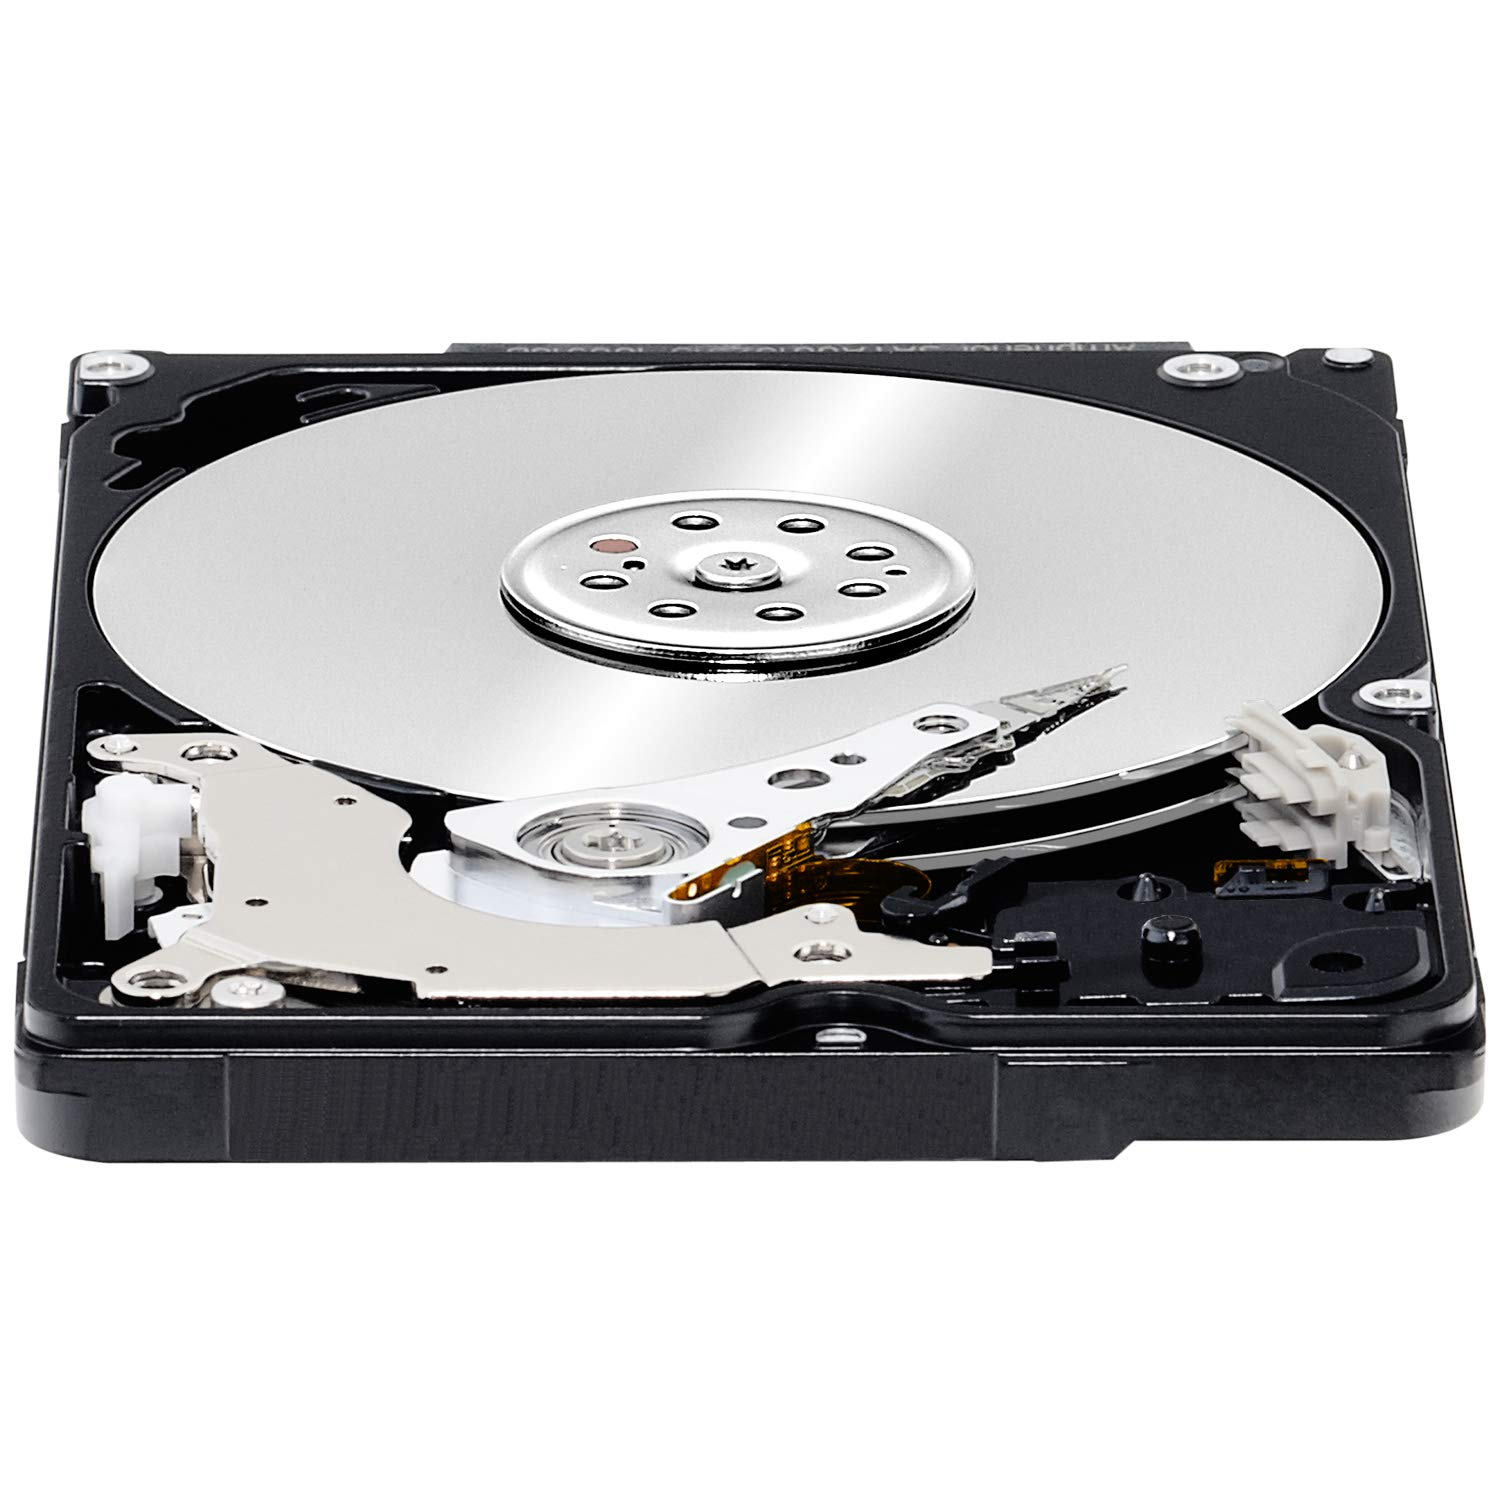 WD Black 1TB Performance Mobile Hard Disk Drive - 7200 RPM SATA 6 Gb/s 32MB Cache 9.5 MM 2.5 Inch - WD10JPLX by Western Digital (Image #7)